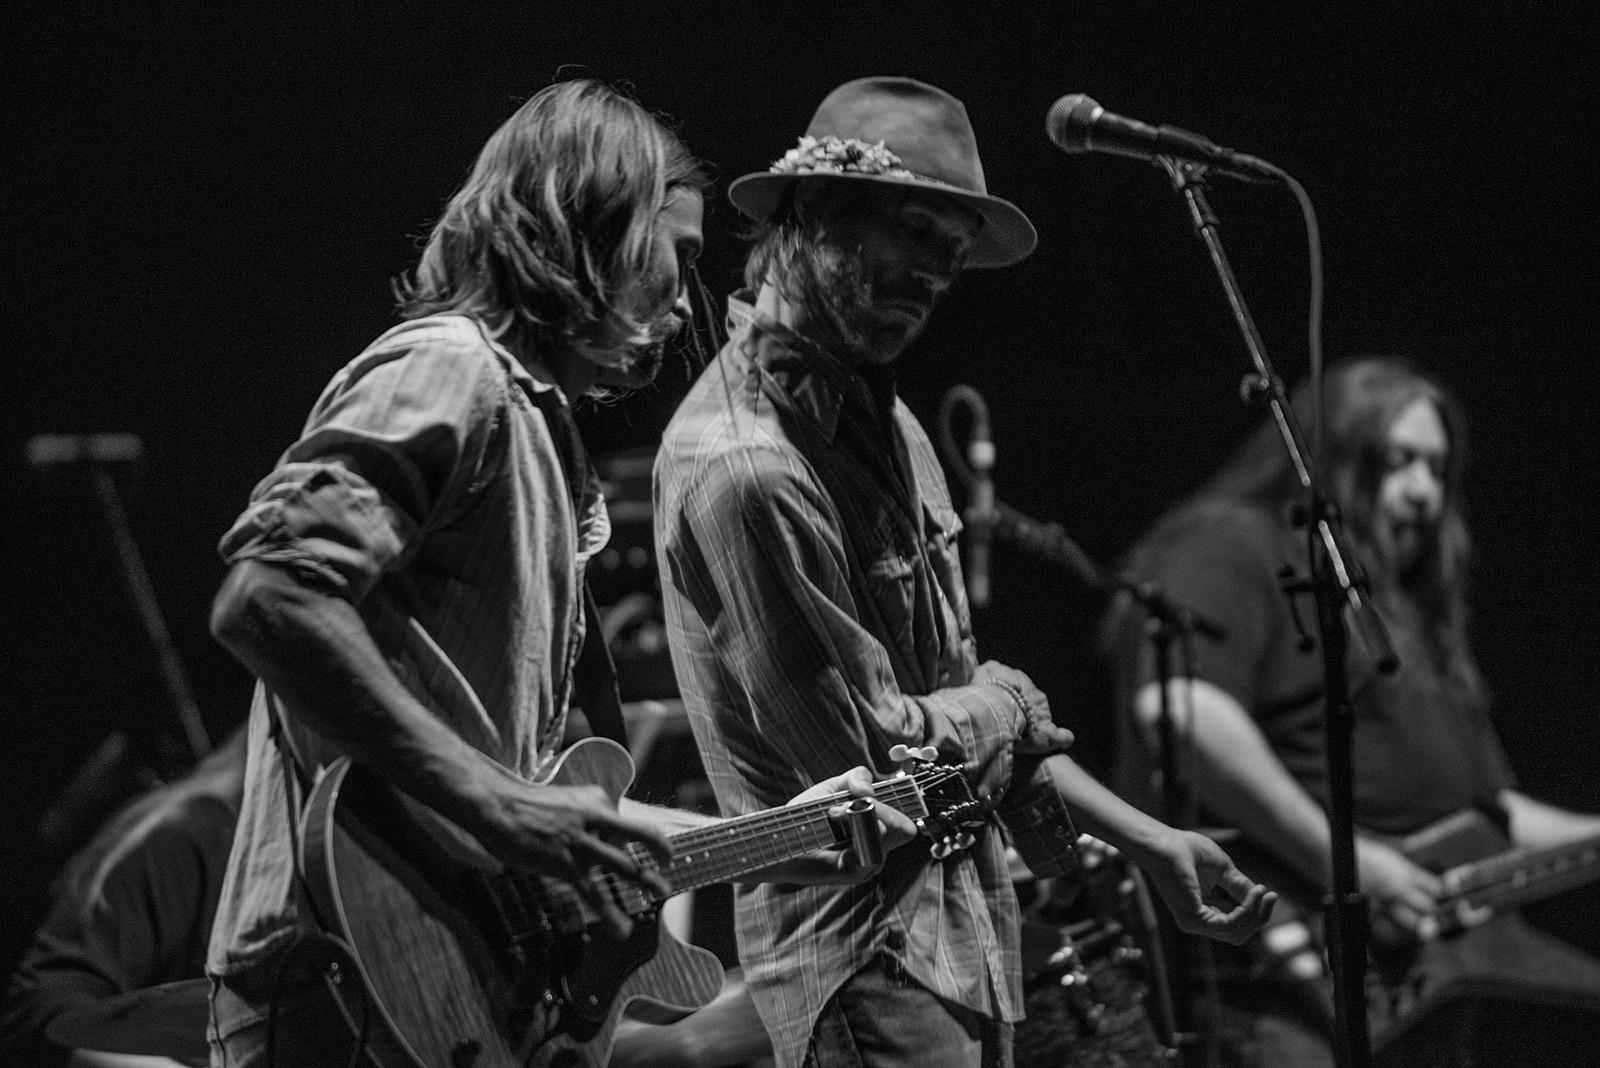 Hard Working Americans, a supergroup of sorts built up of talents from several rock bands, opened up the stage Friday at a sold-out performance of Tedeschi Trucks Band at Portland's Keller Auditorium. The band features Portland native Todd Snider on vocals, Neal Casal of Chris Robinson Brotherhood on guitar, and bassist Dave Schools along with drummer Duane Trucks (Derek Trucks' brother) from Widespread Panic. (KATU Photo taken 11-3-2017 by Tristan Fortsch)